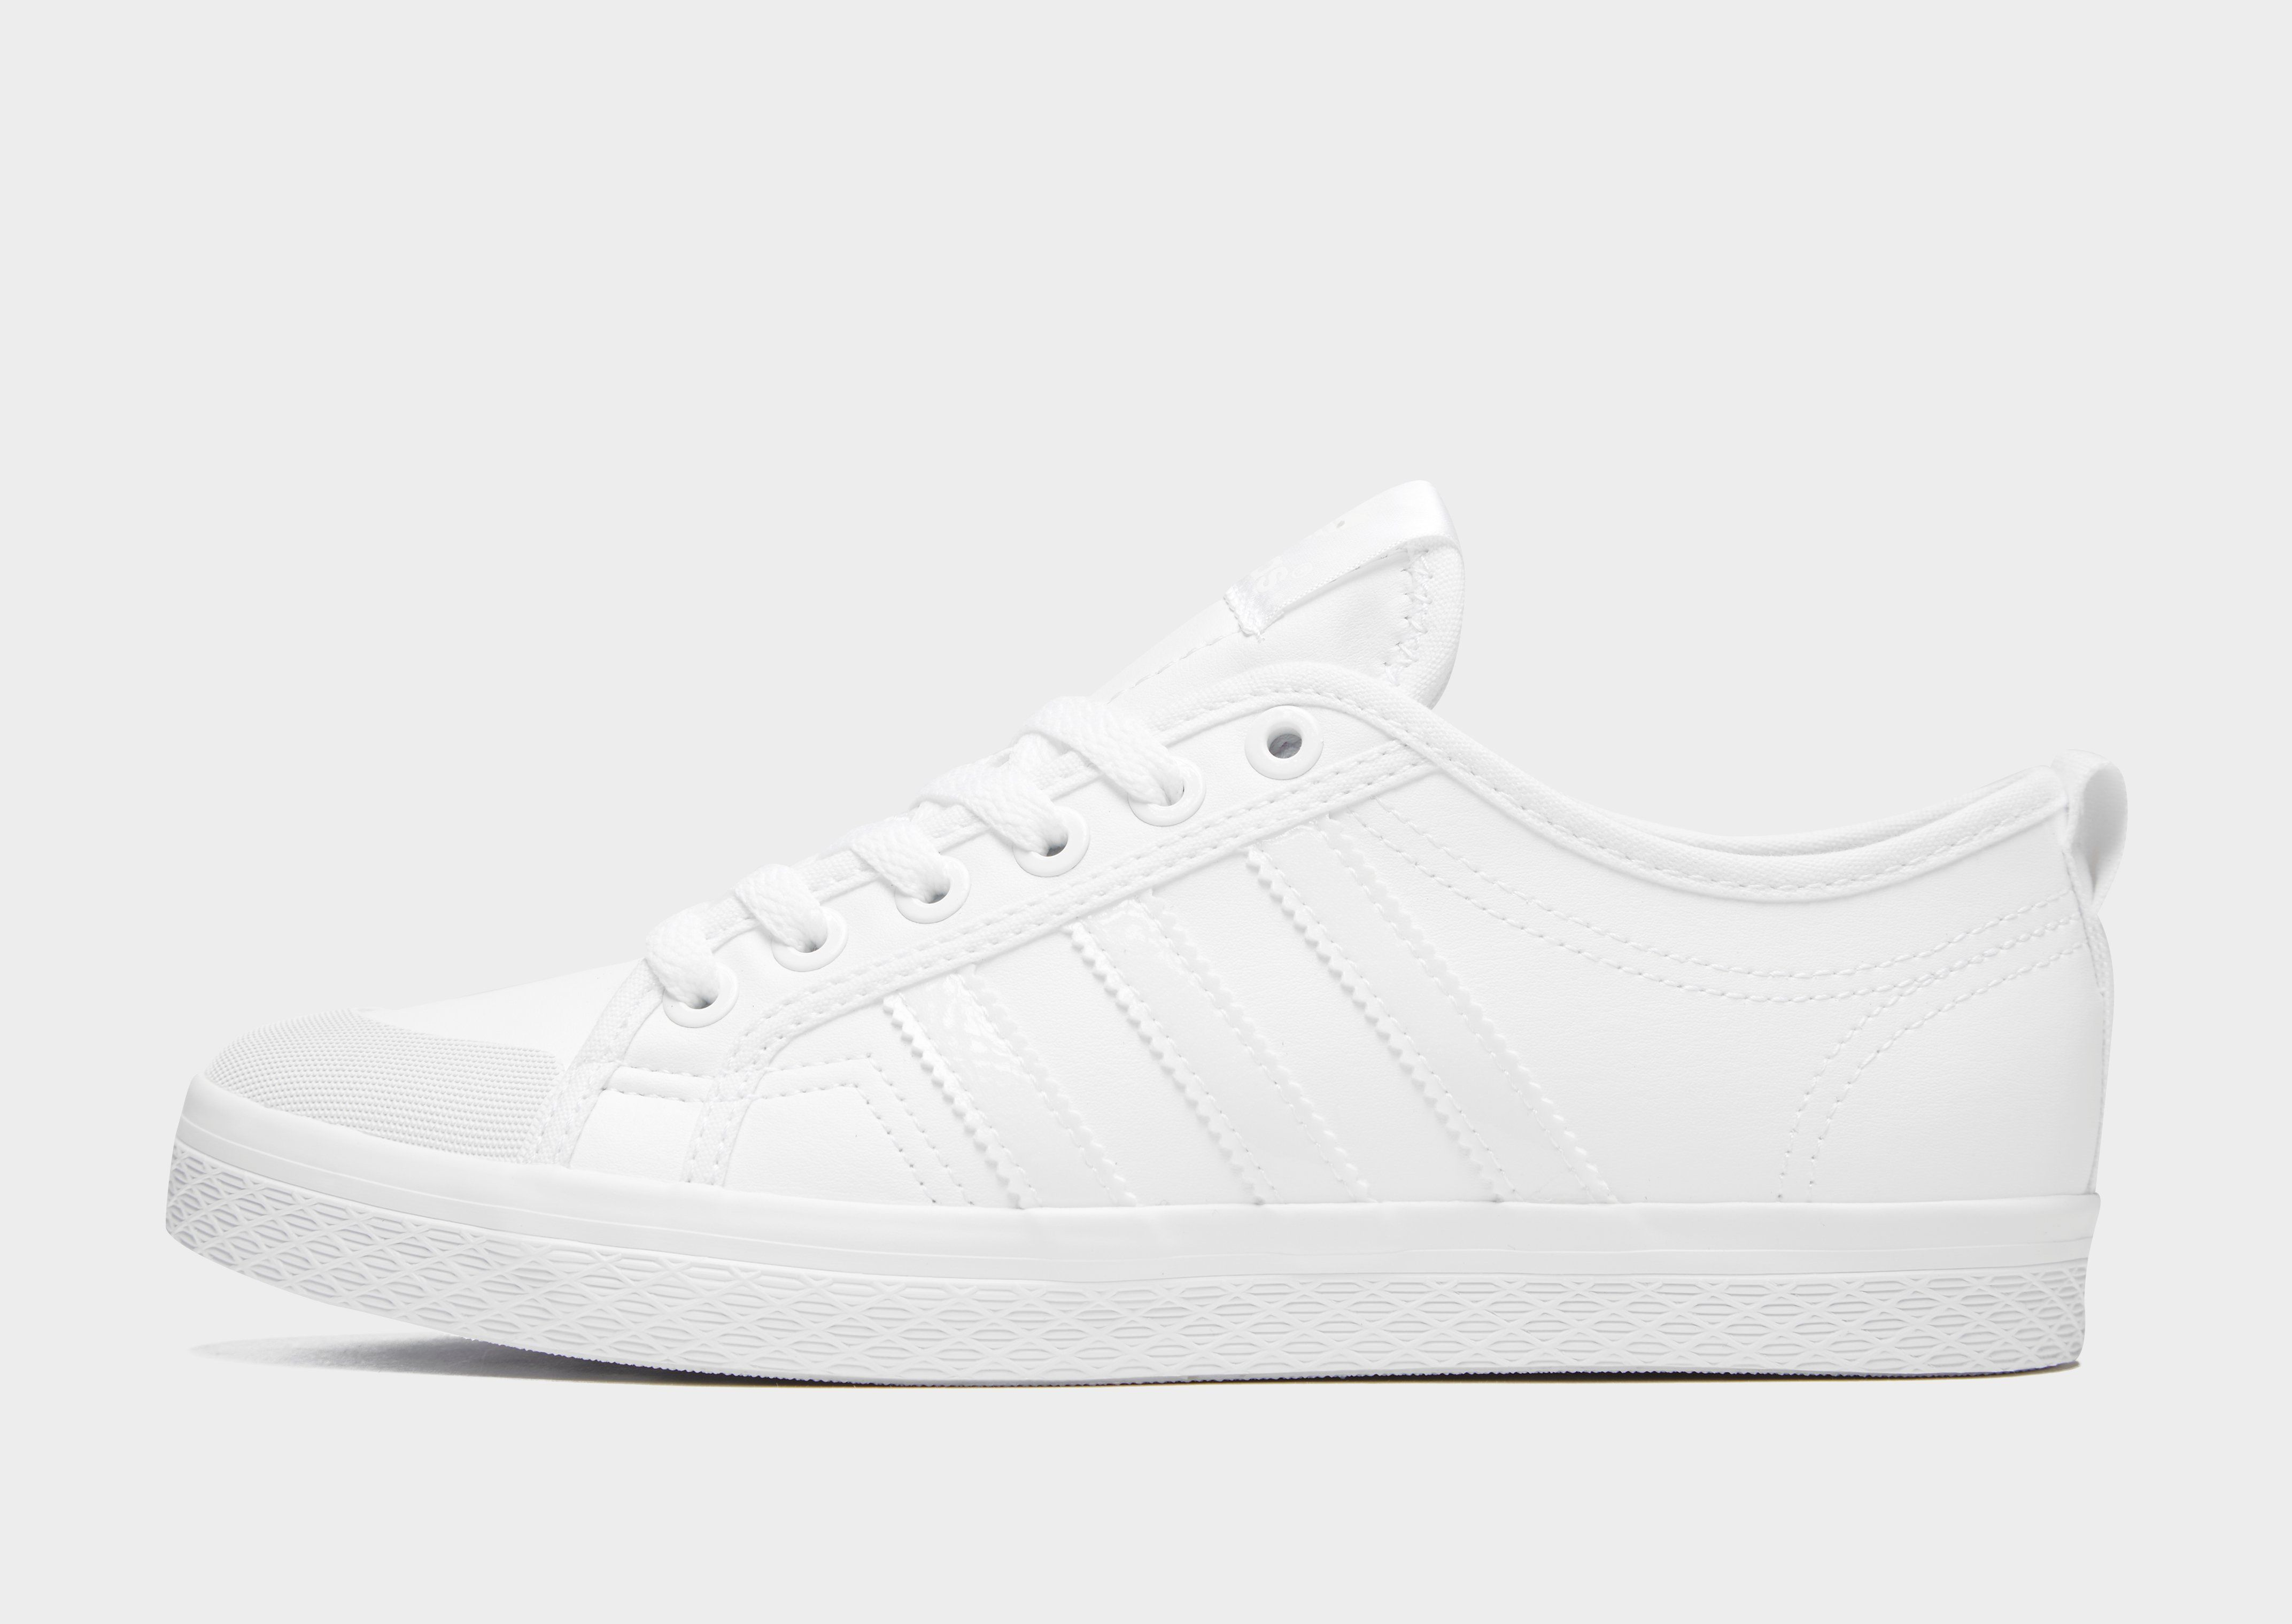 Adidas Originals Honey Lo Para Mujer Compra Online Adidas Originals Honey Lo Para Mujer En Jd Sports La Adidas Honey White Adidas Originals Adidas Originals